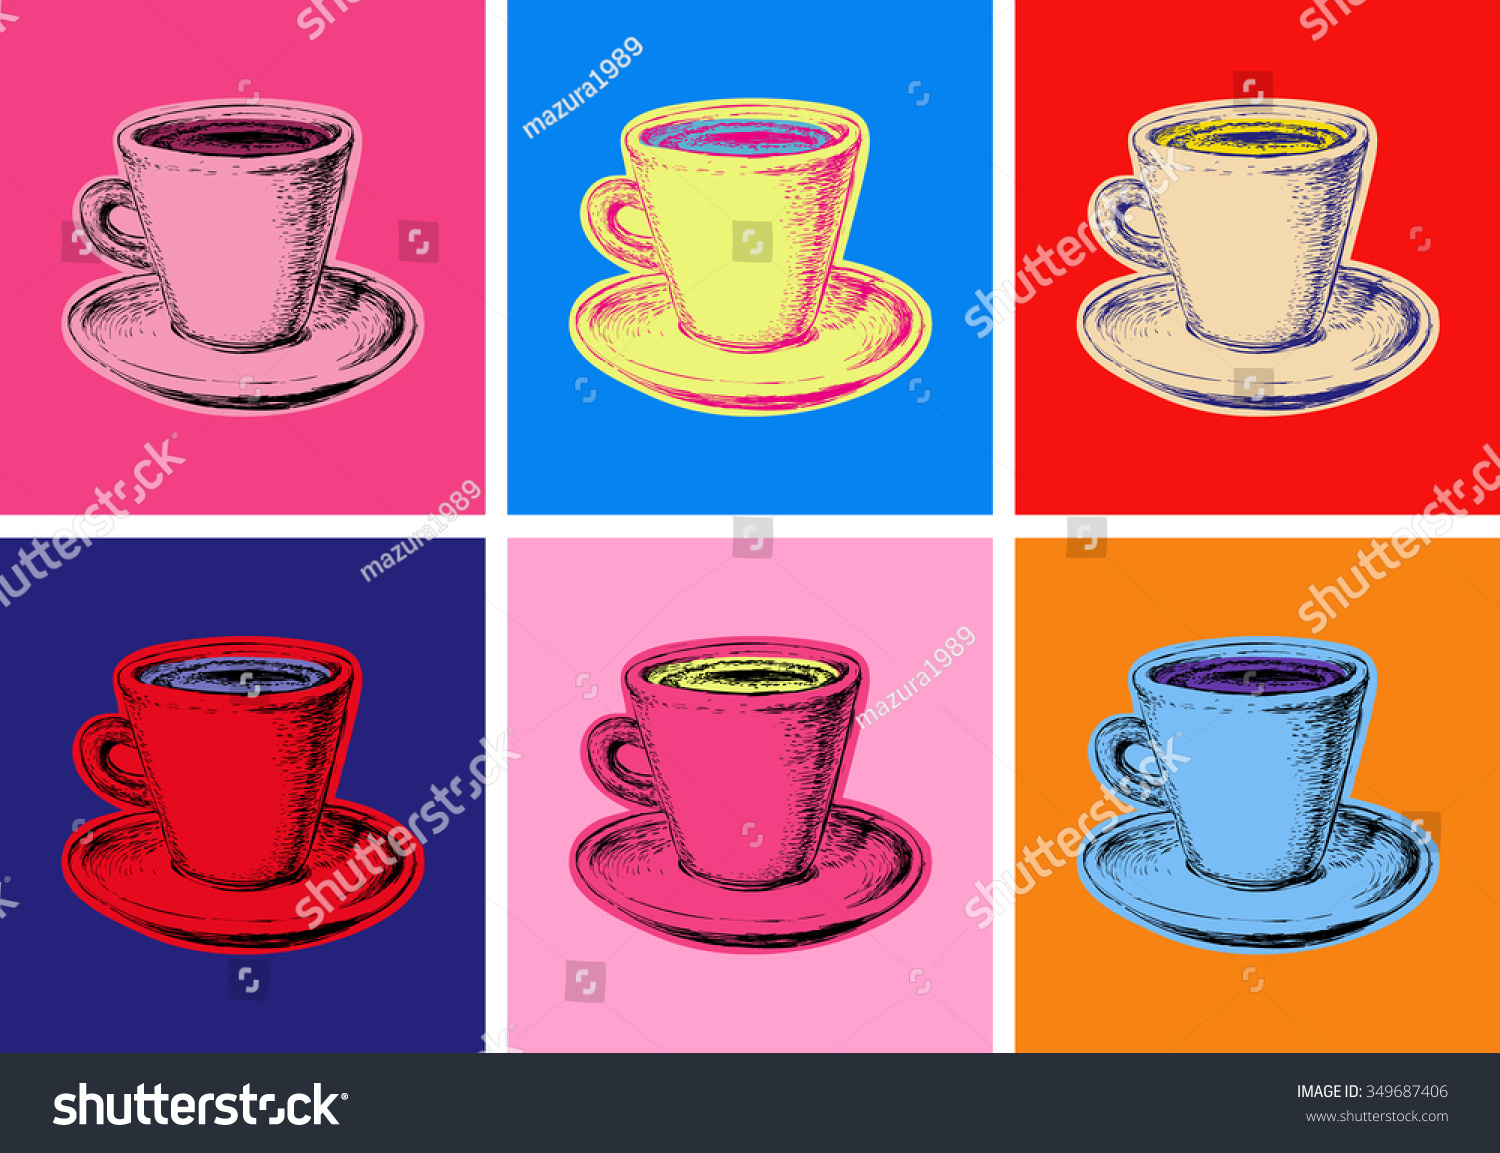 Set Coffee Mug Vector Illustration Pop Stock Vector